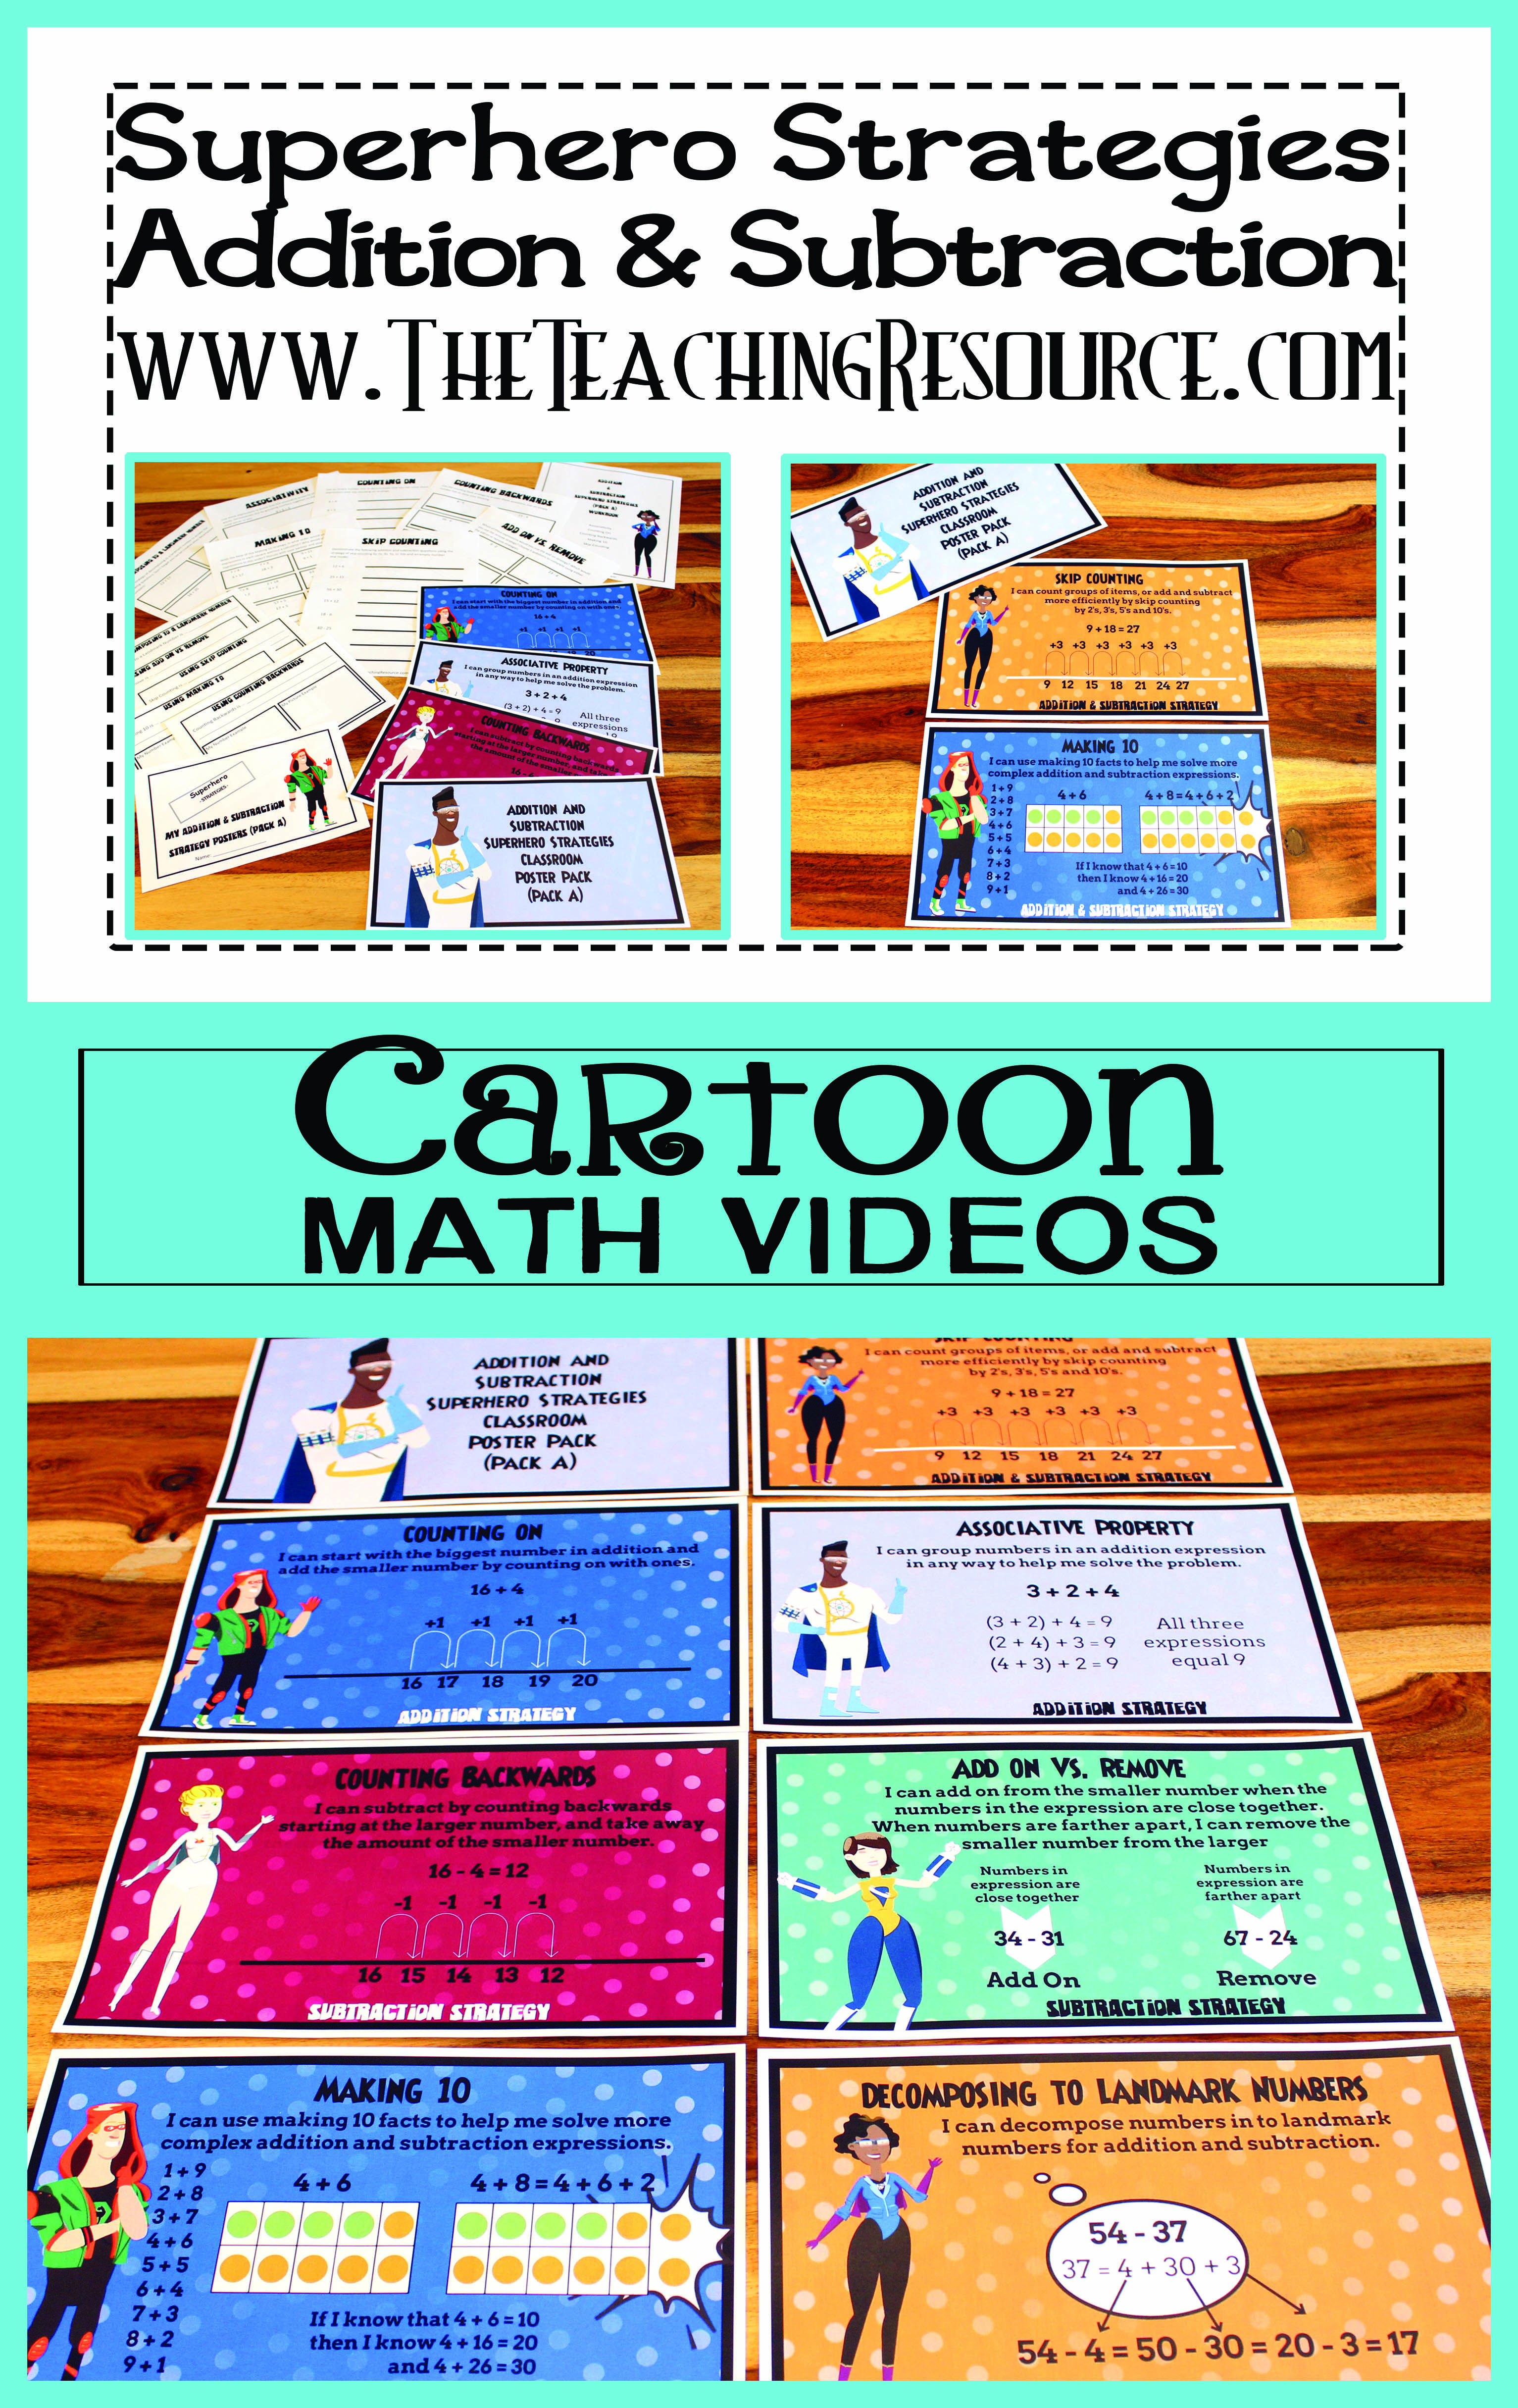 Addition And Subtraction Strategy Cartoon Video Series